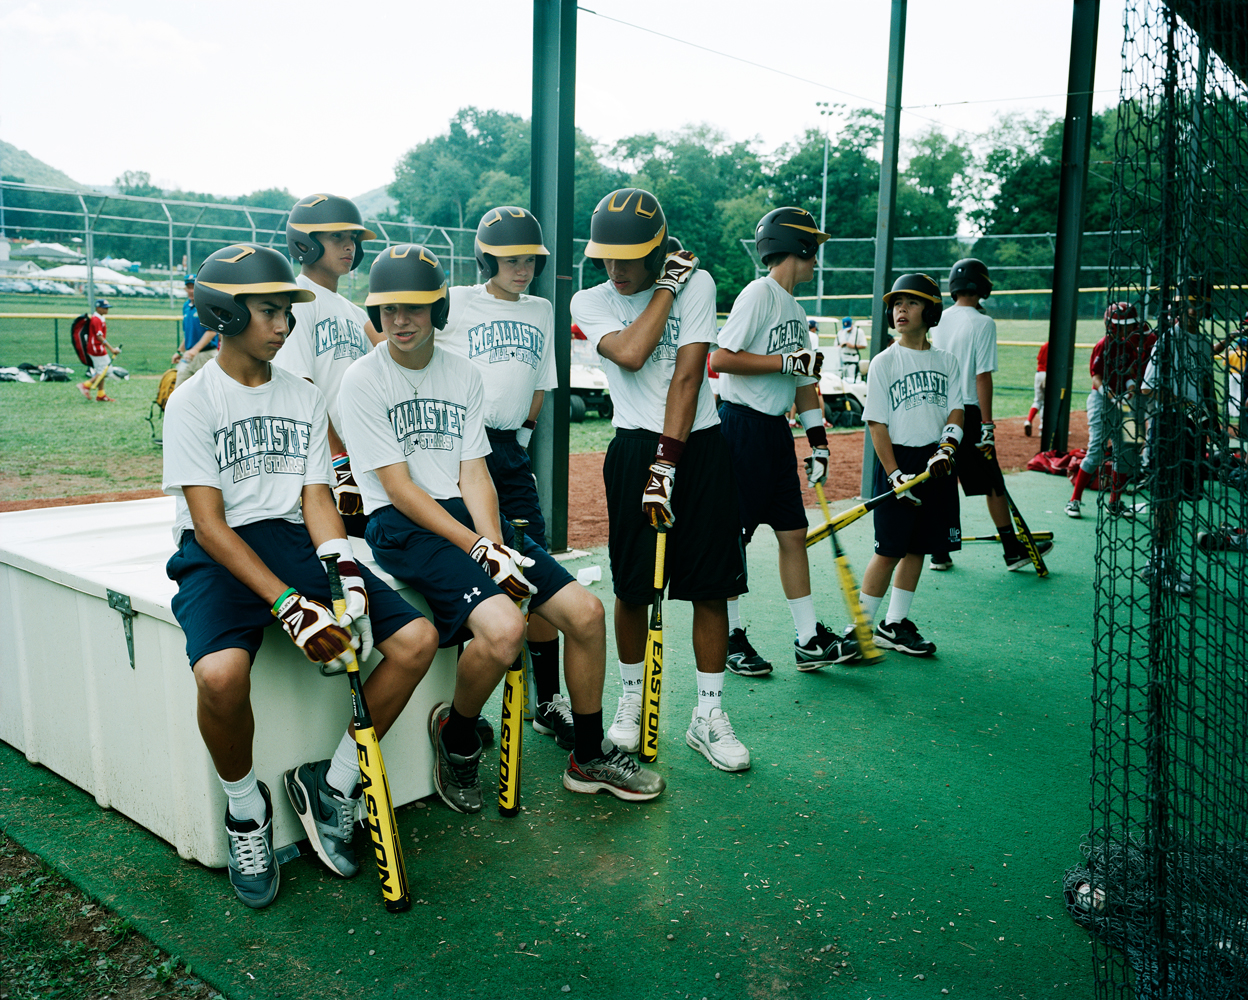 The McAllister Park National Little League team from San Antonio, Texas at batting practice. They are the 2012 Southwest Champions.